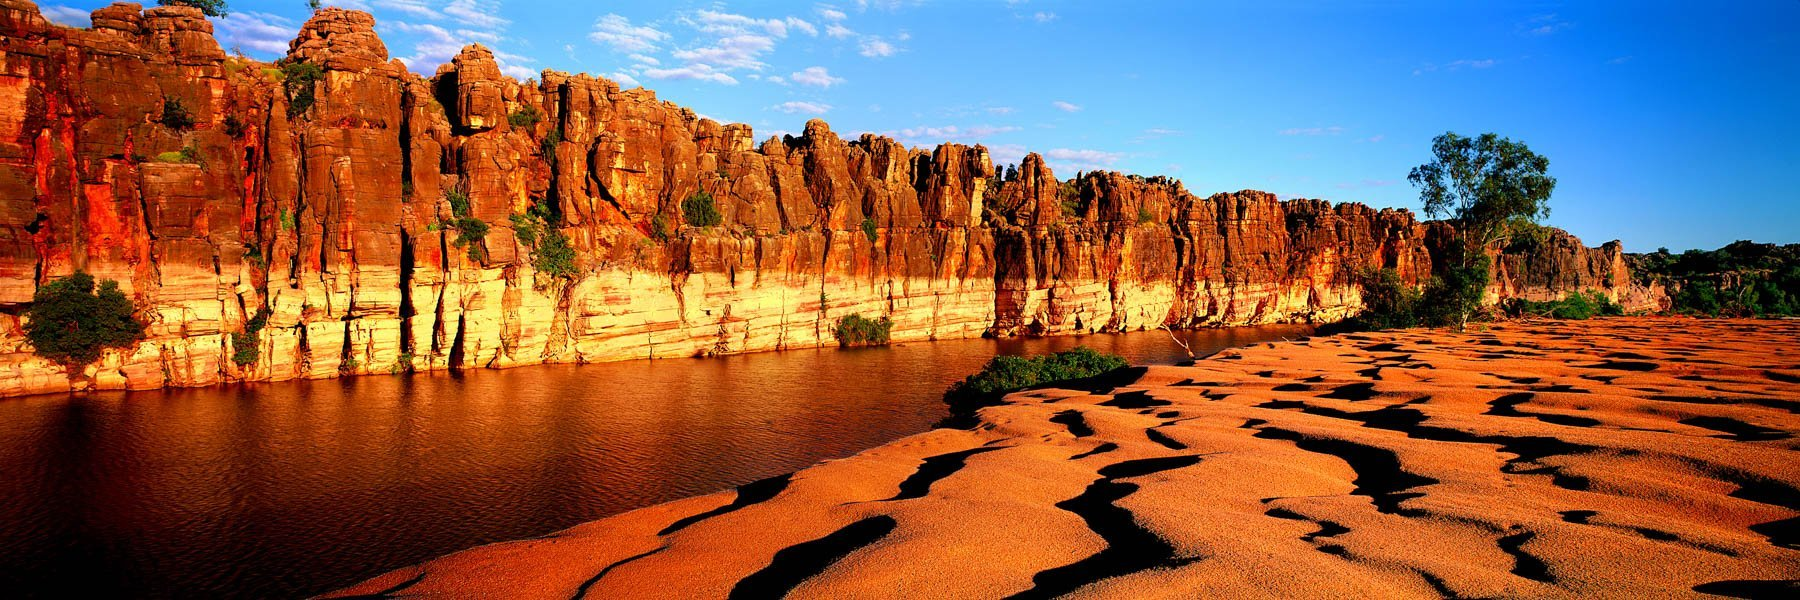 Fitzroy River flowing through Geike Gorge in The Kimberley, WA, Australia.